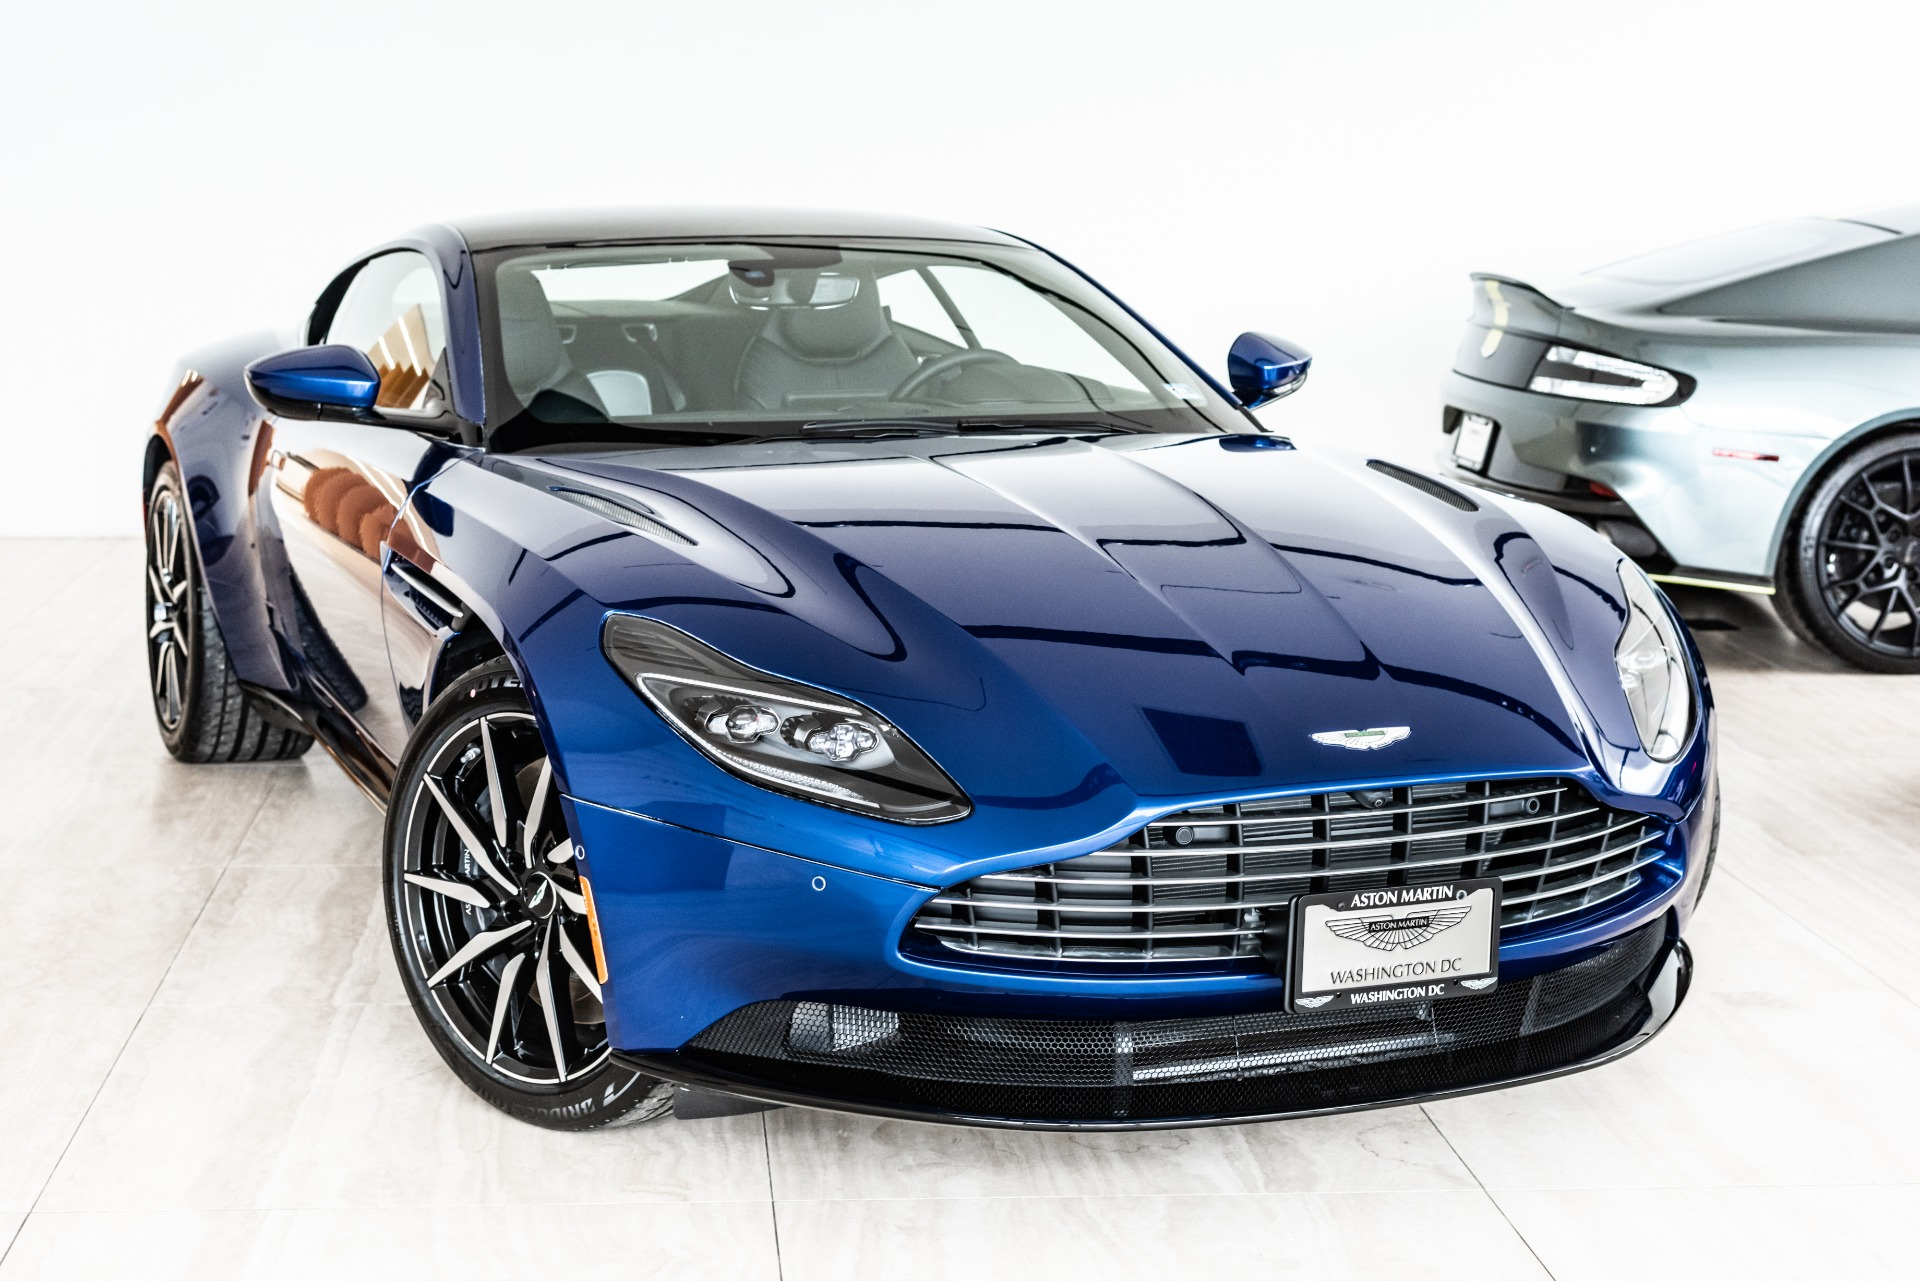 2019 aston martin db11 v8 stock # 9nl07380 for sale near vienna, va